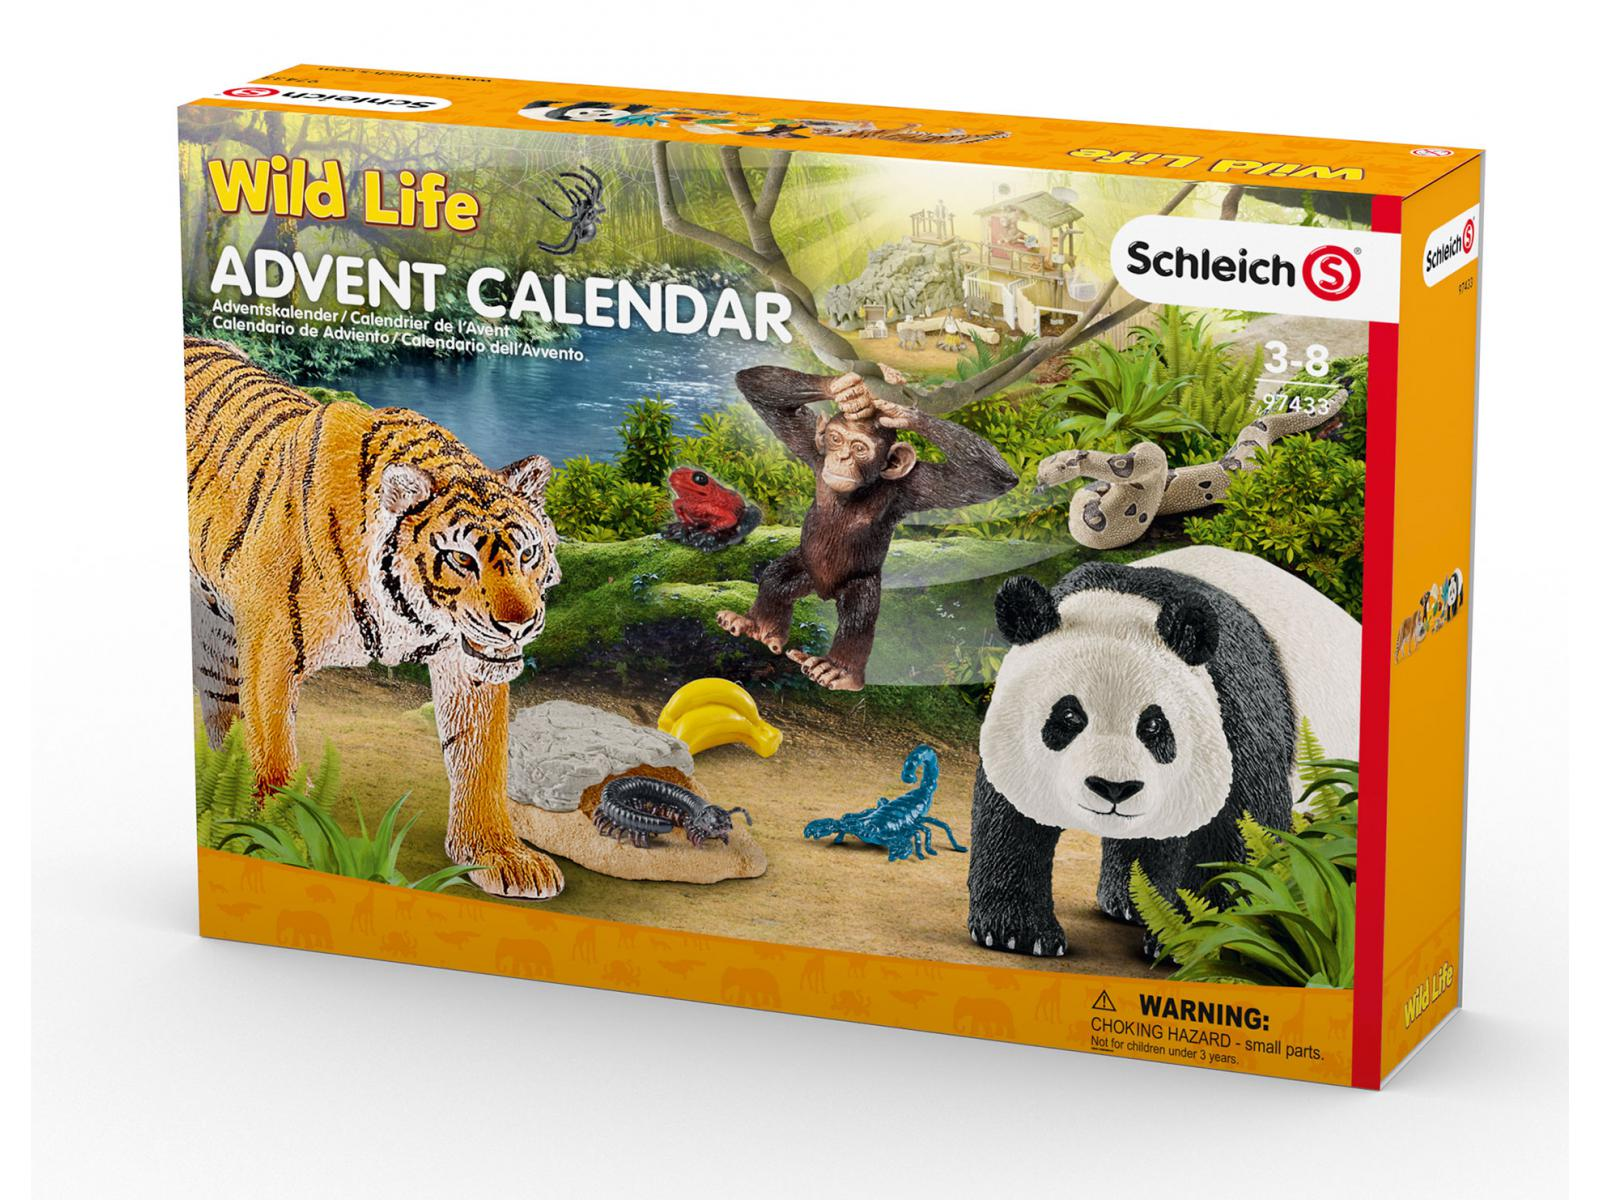 schleich calendrier de l 39 avent wild life 2017. Black Bedroom Furniture Sets. Home Design Ideas